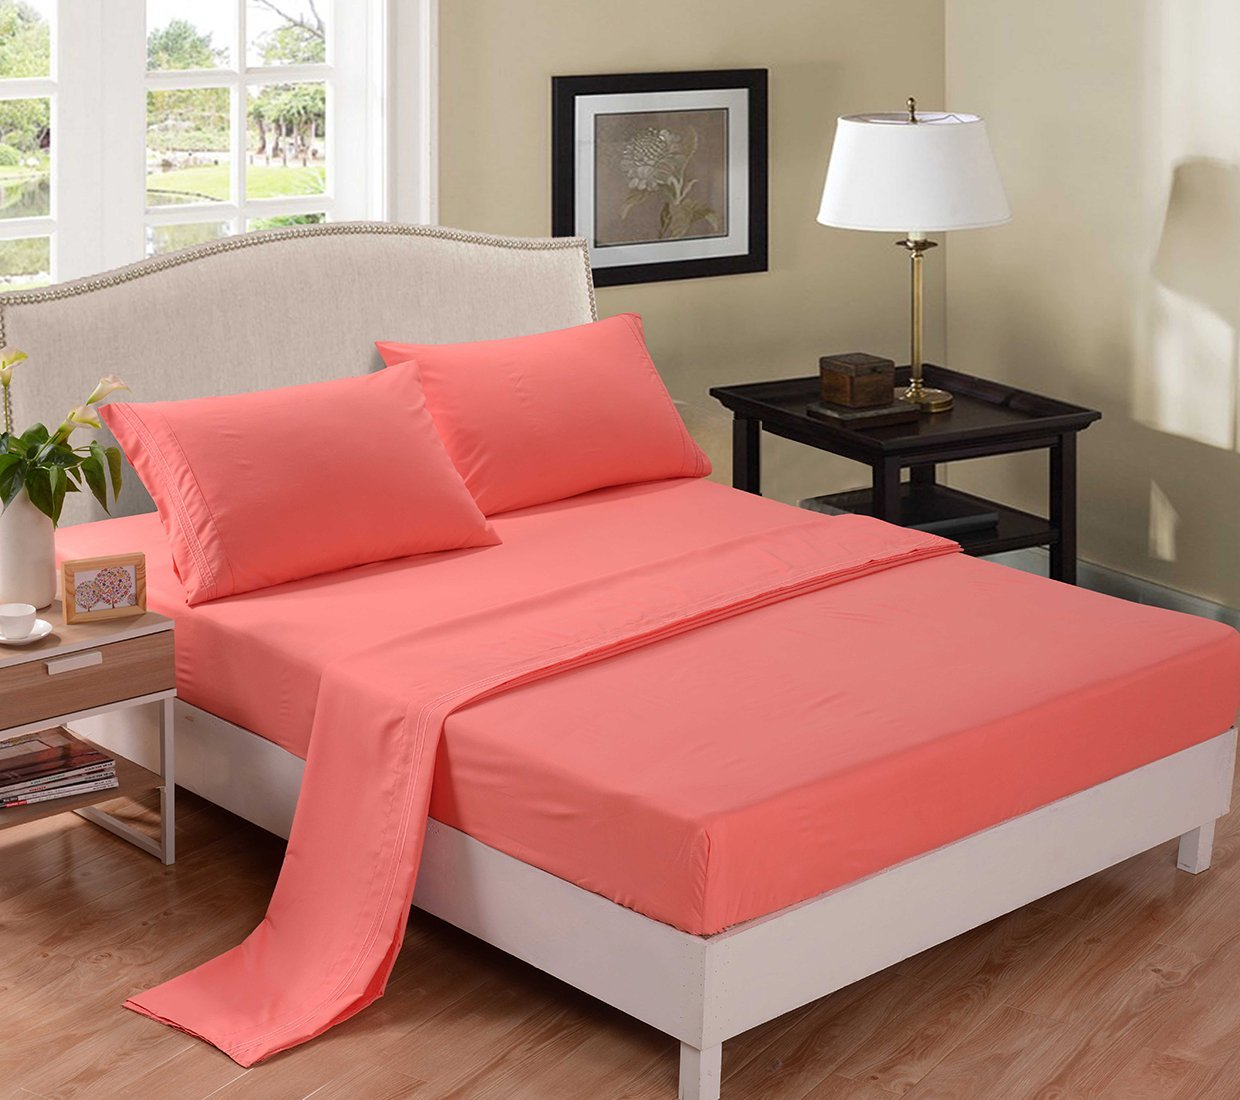 Coral Colored Bedding; 4 Pc Set Solid Coral Bed Sheets